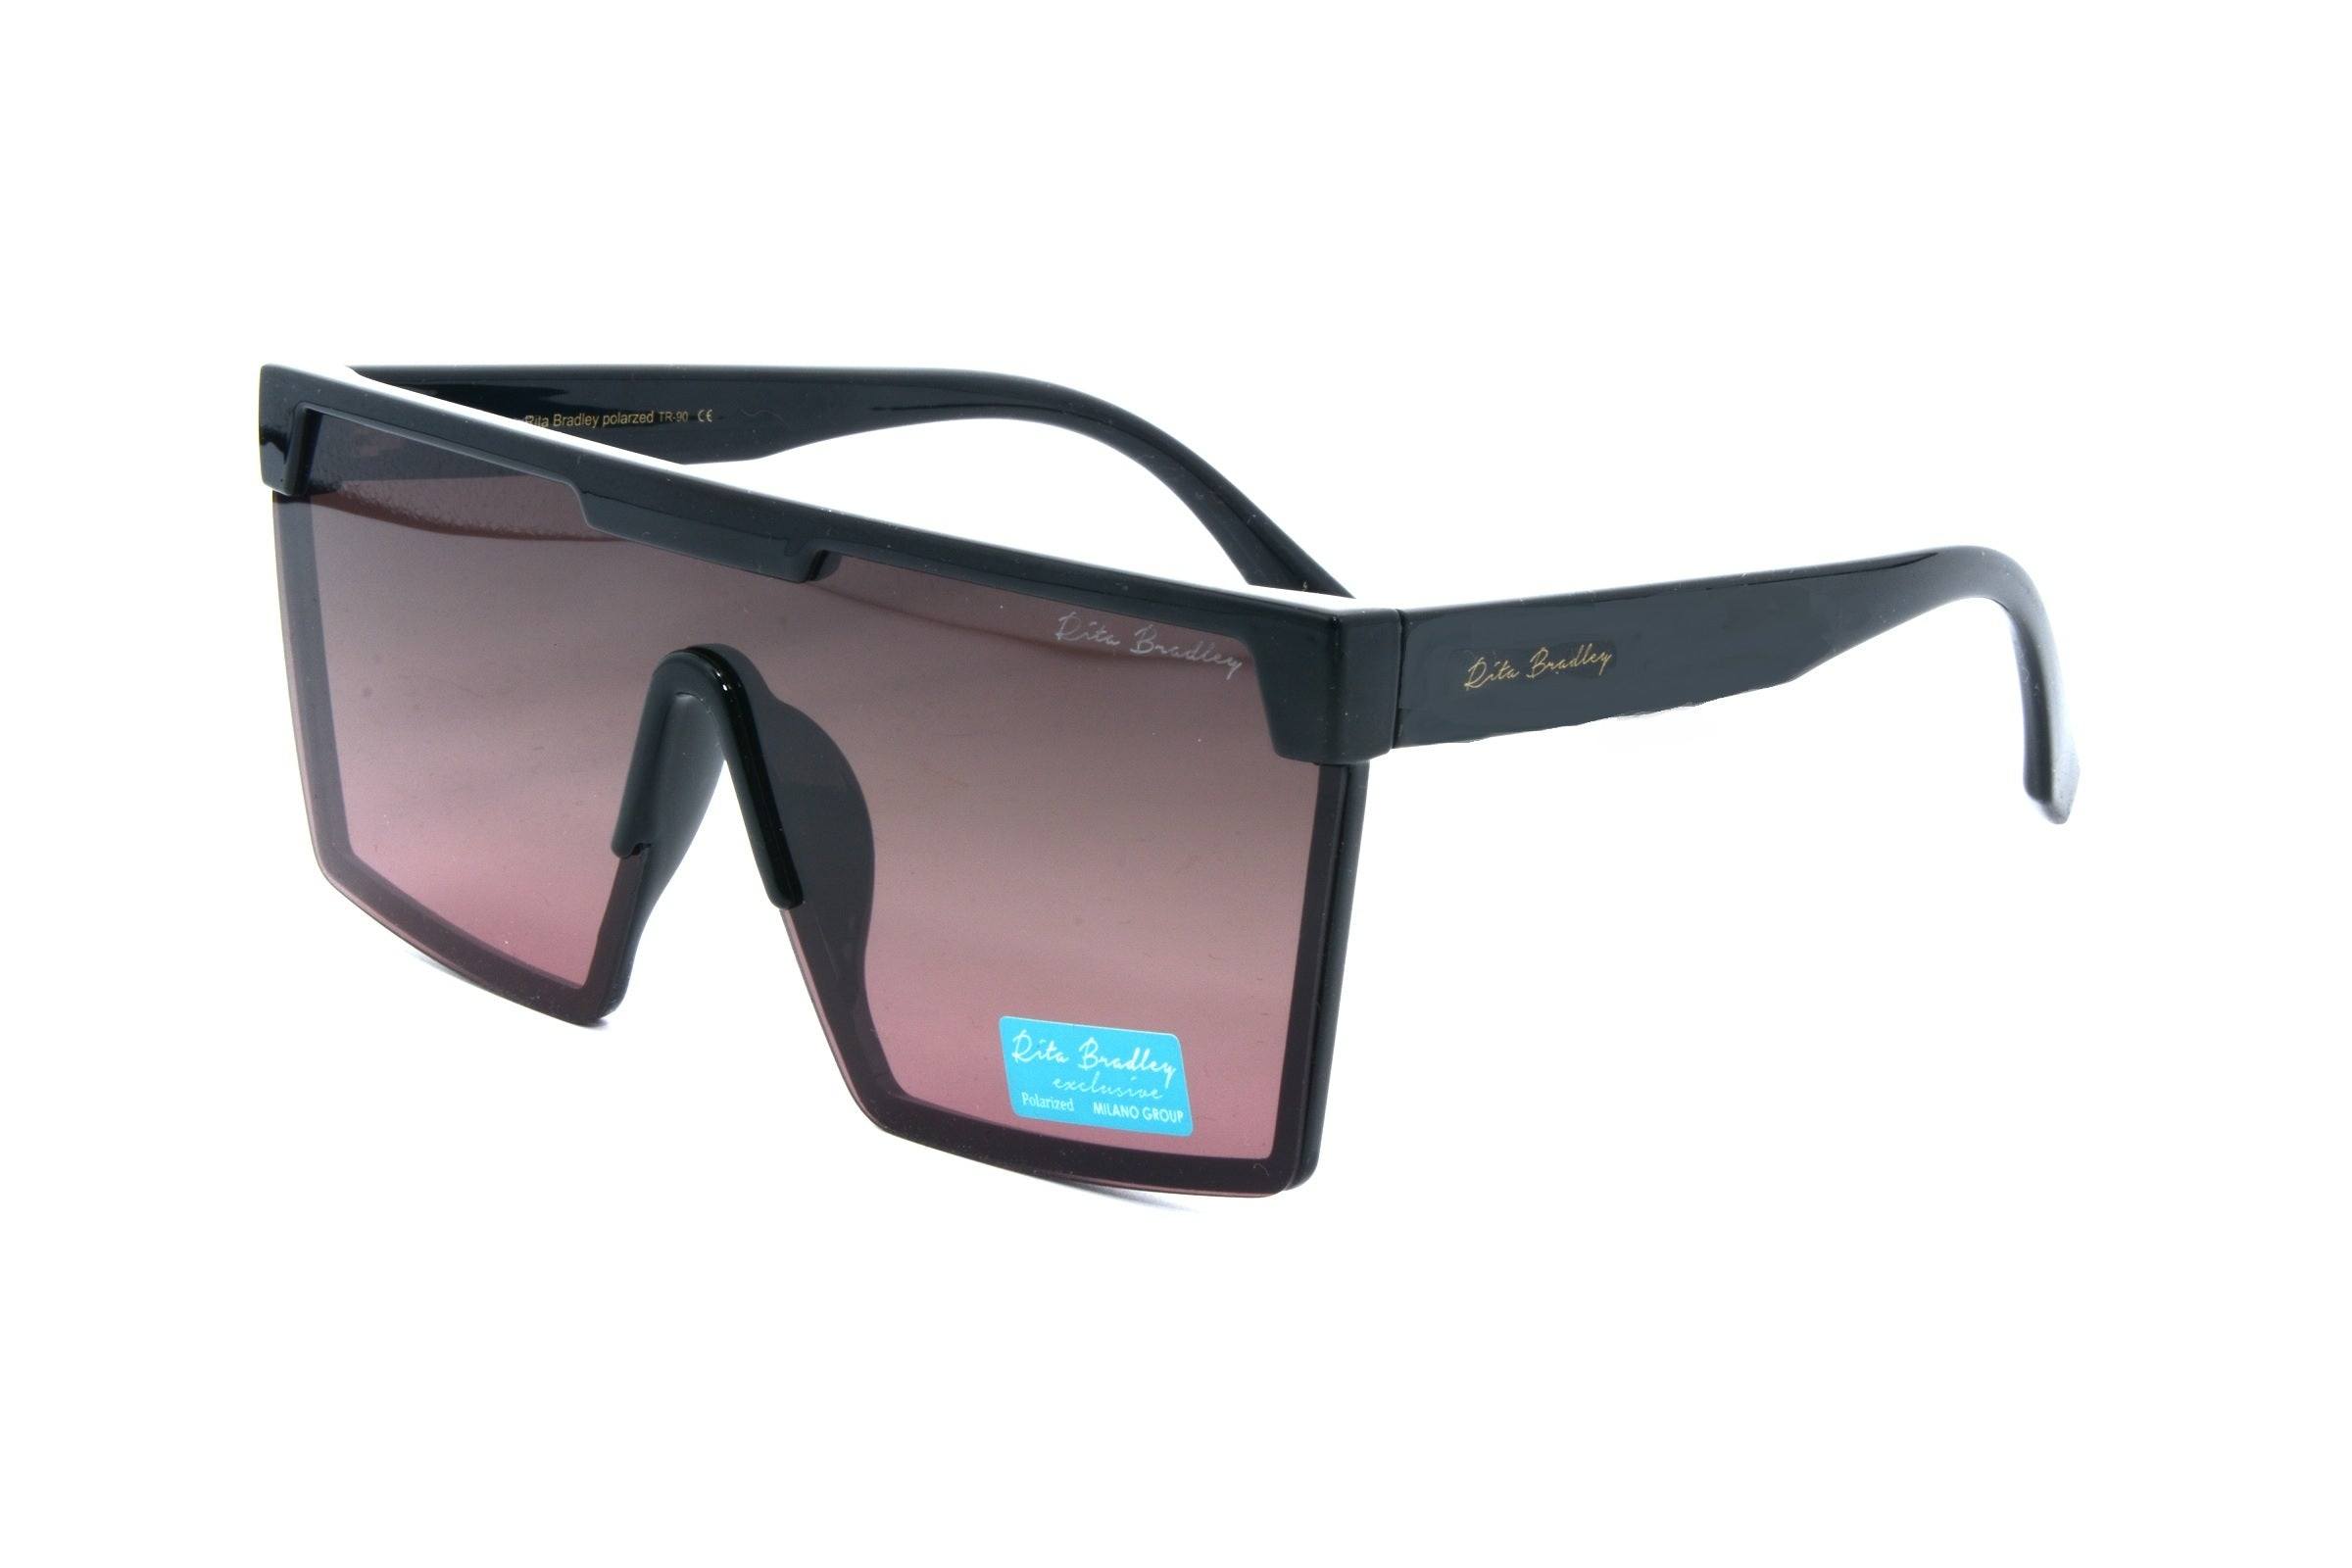 Rita Bradley sunglasses RB702 003